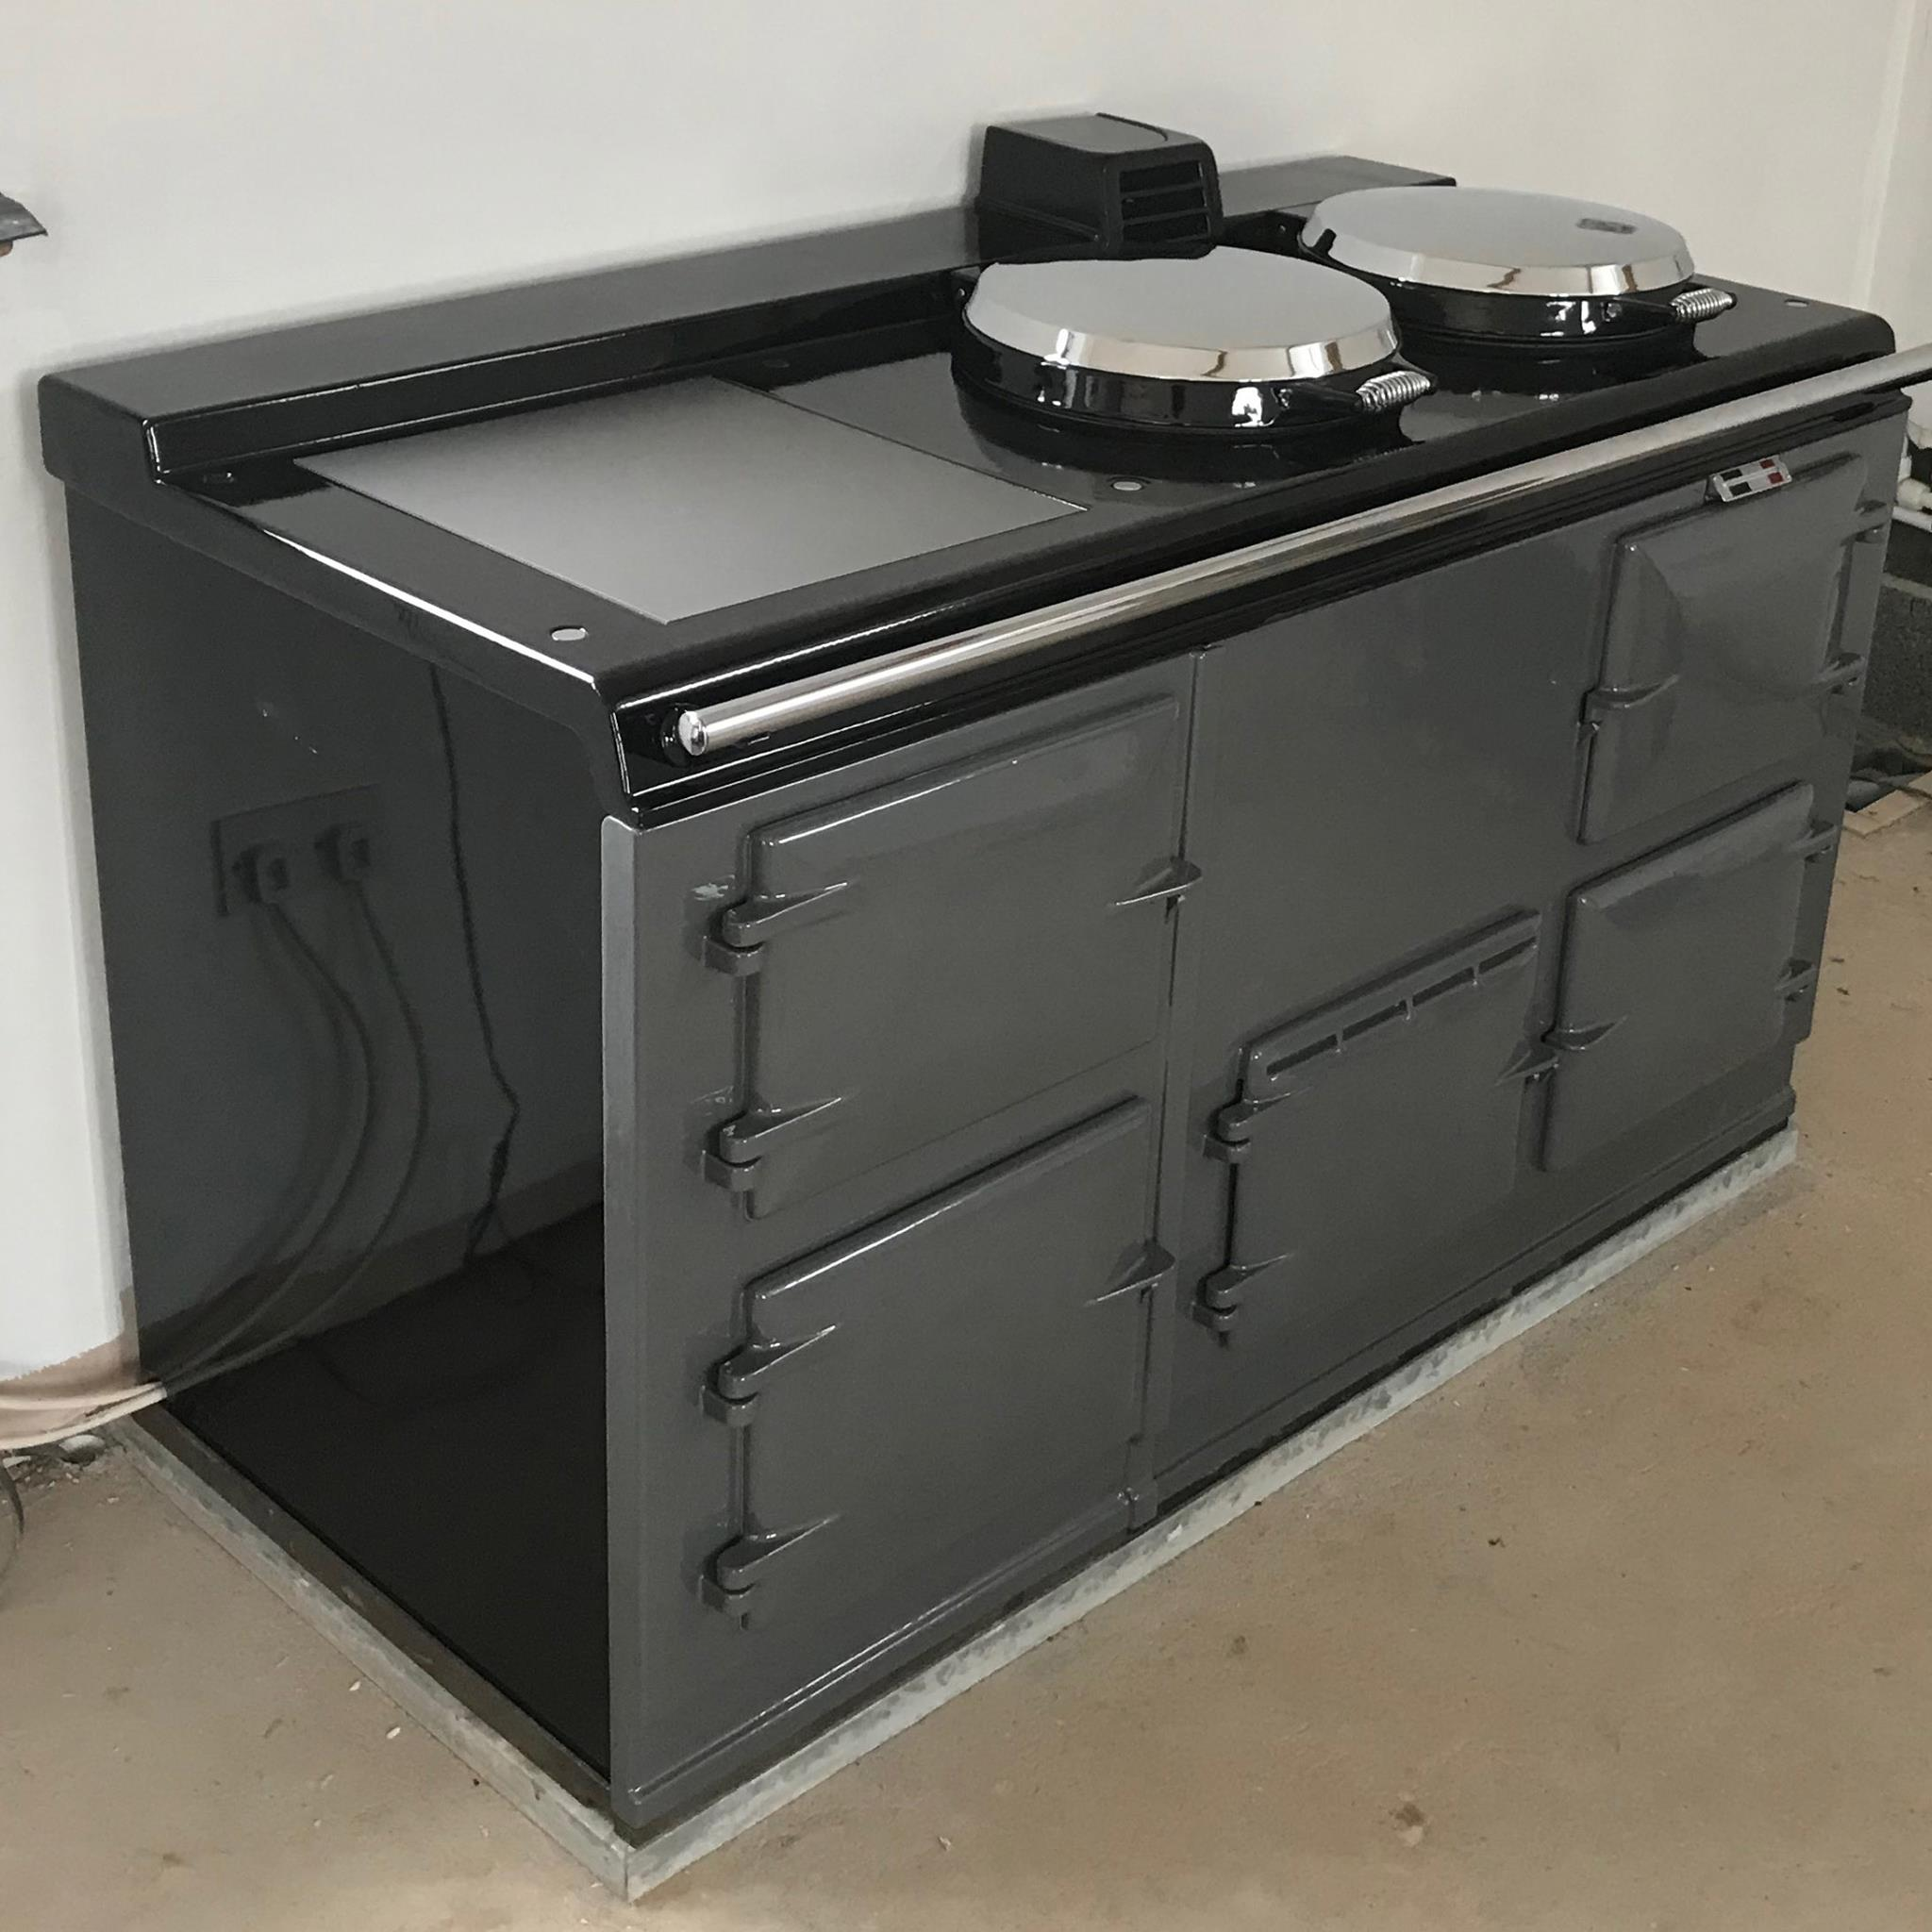 Refurbished Aga range cooker